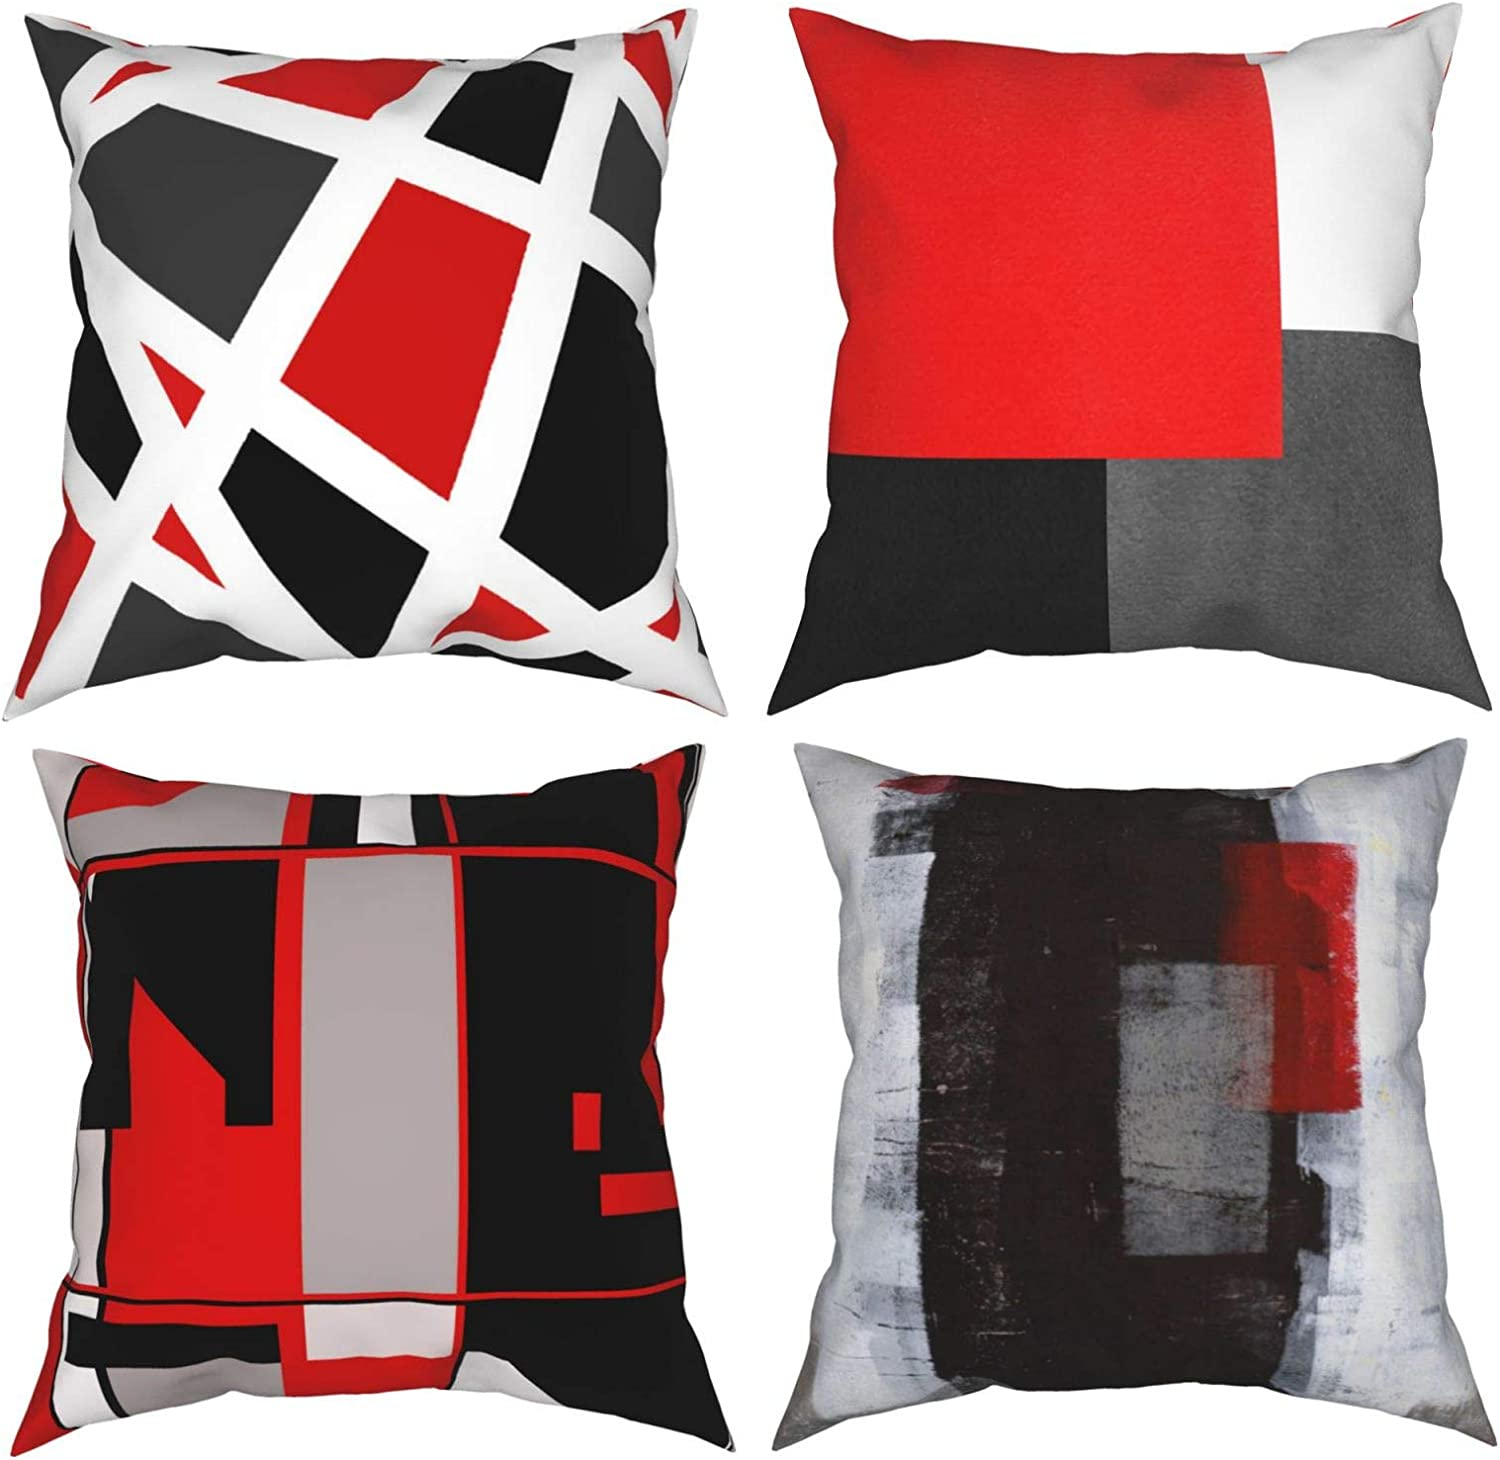 CURYSAMJUN Red and Black White Gray Pattern Retro Abstract Stripes Spiral Throw Pillow Covers Set of 4 Decorative Pillow Cases Home Decor Square Cushion Covers 20x20 Inches